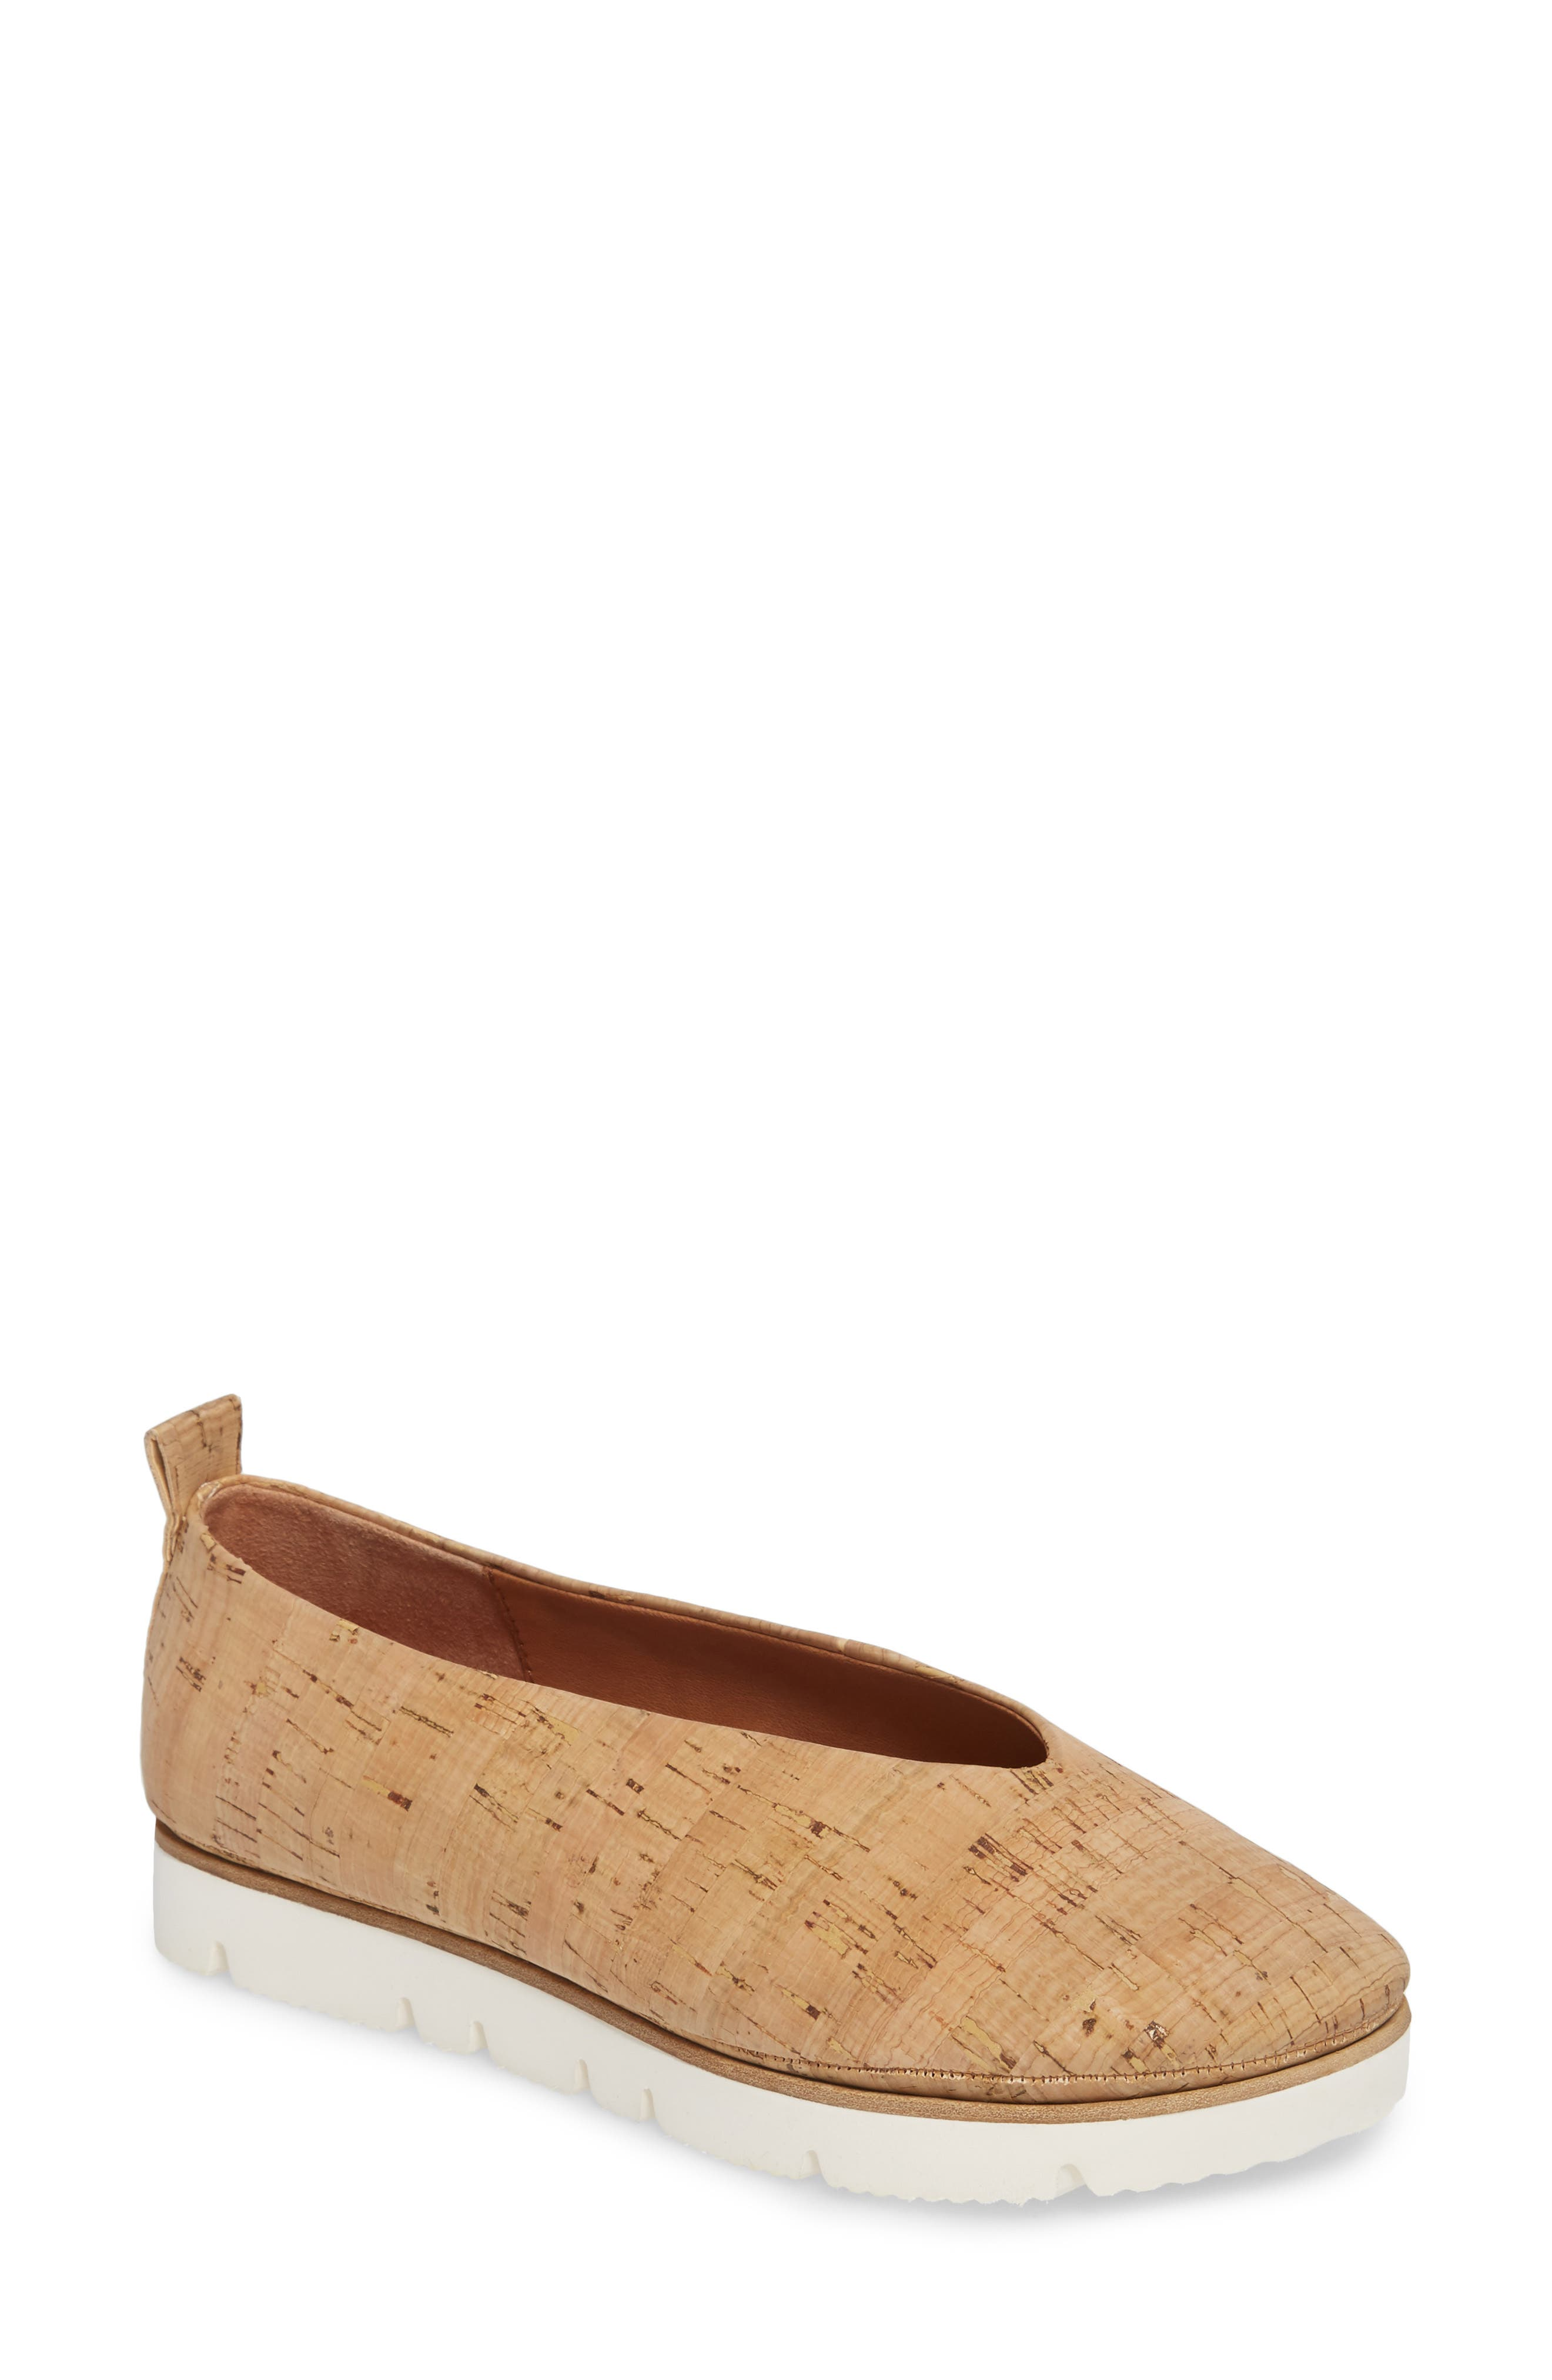 Demi Flat,                         Main,                         color, NATURAL LEATHER